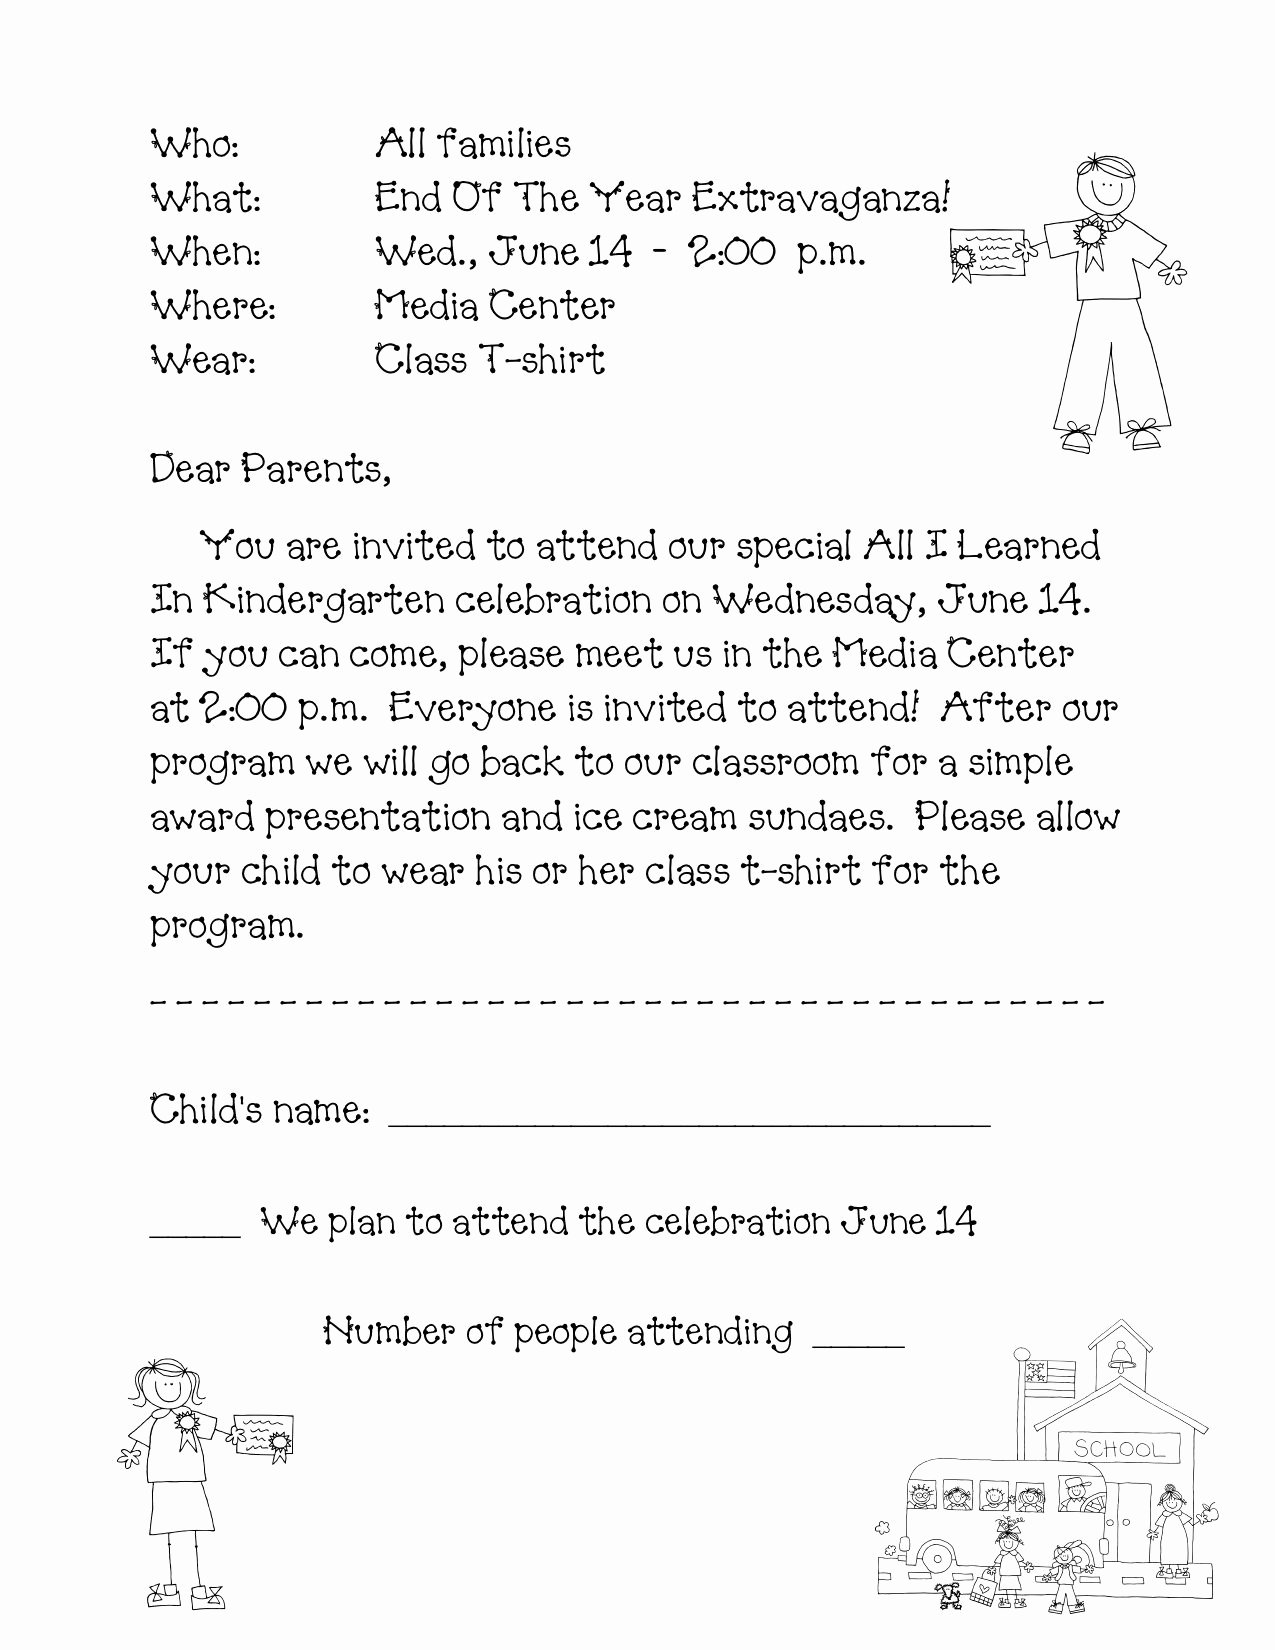 Letter to Parents Template Inspirational Preschool Wel E Letter to Parents From Teacher Template